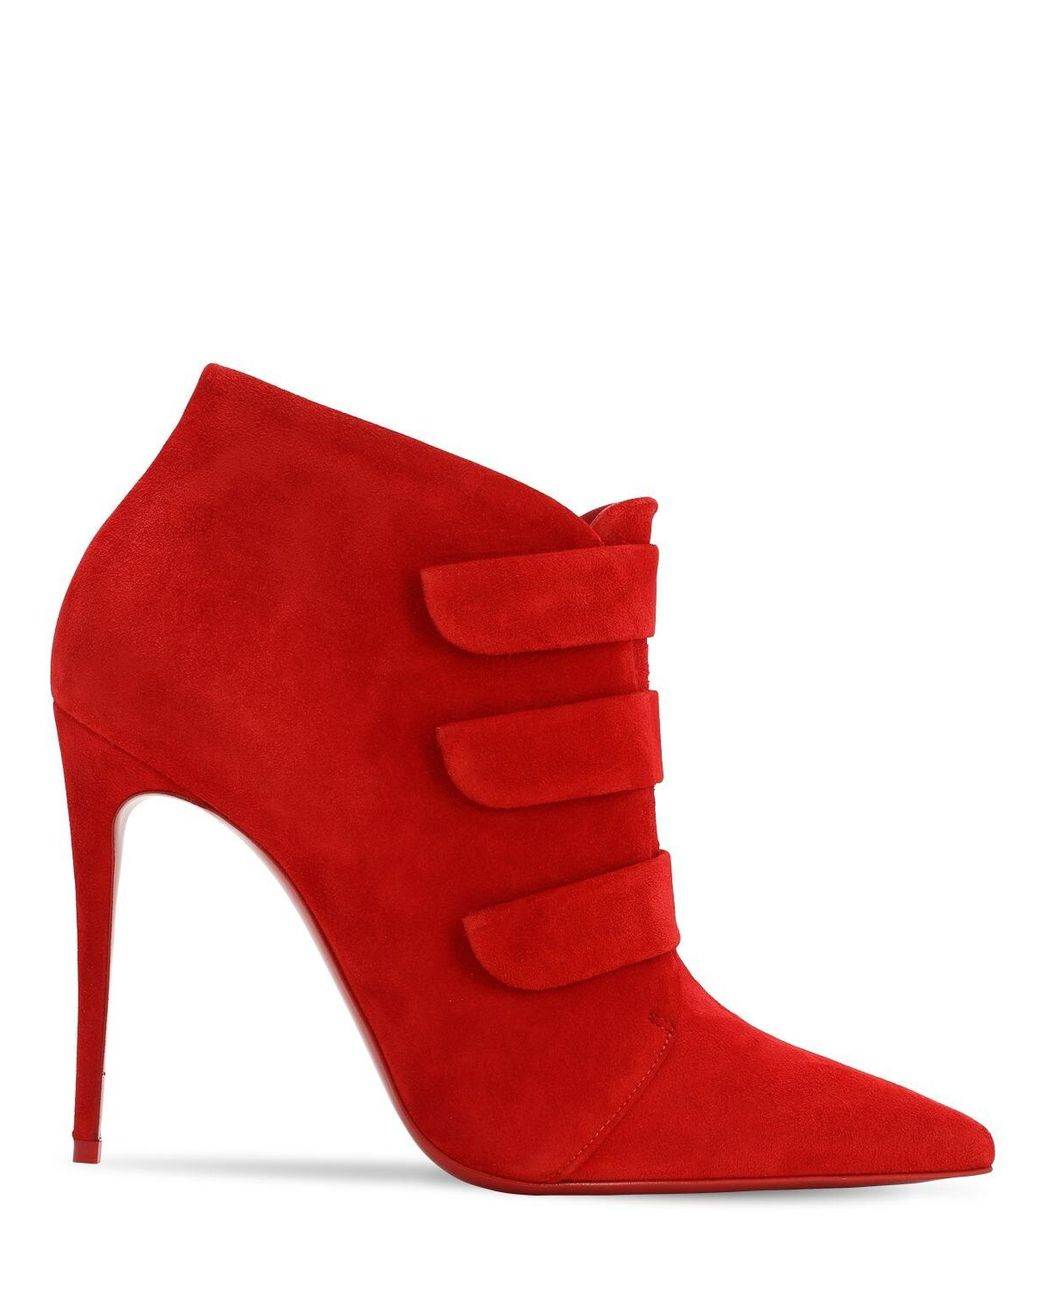 reputable site f5d19 702e5 Women's Red 100mm Triniboot Suede Boots W/ Straps